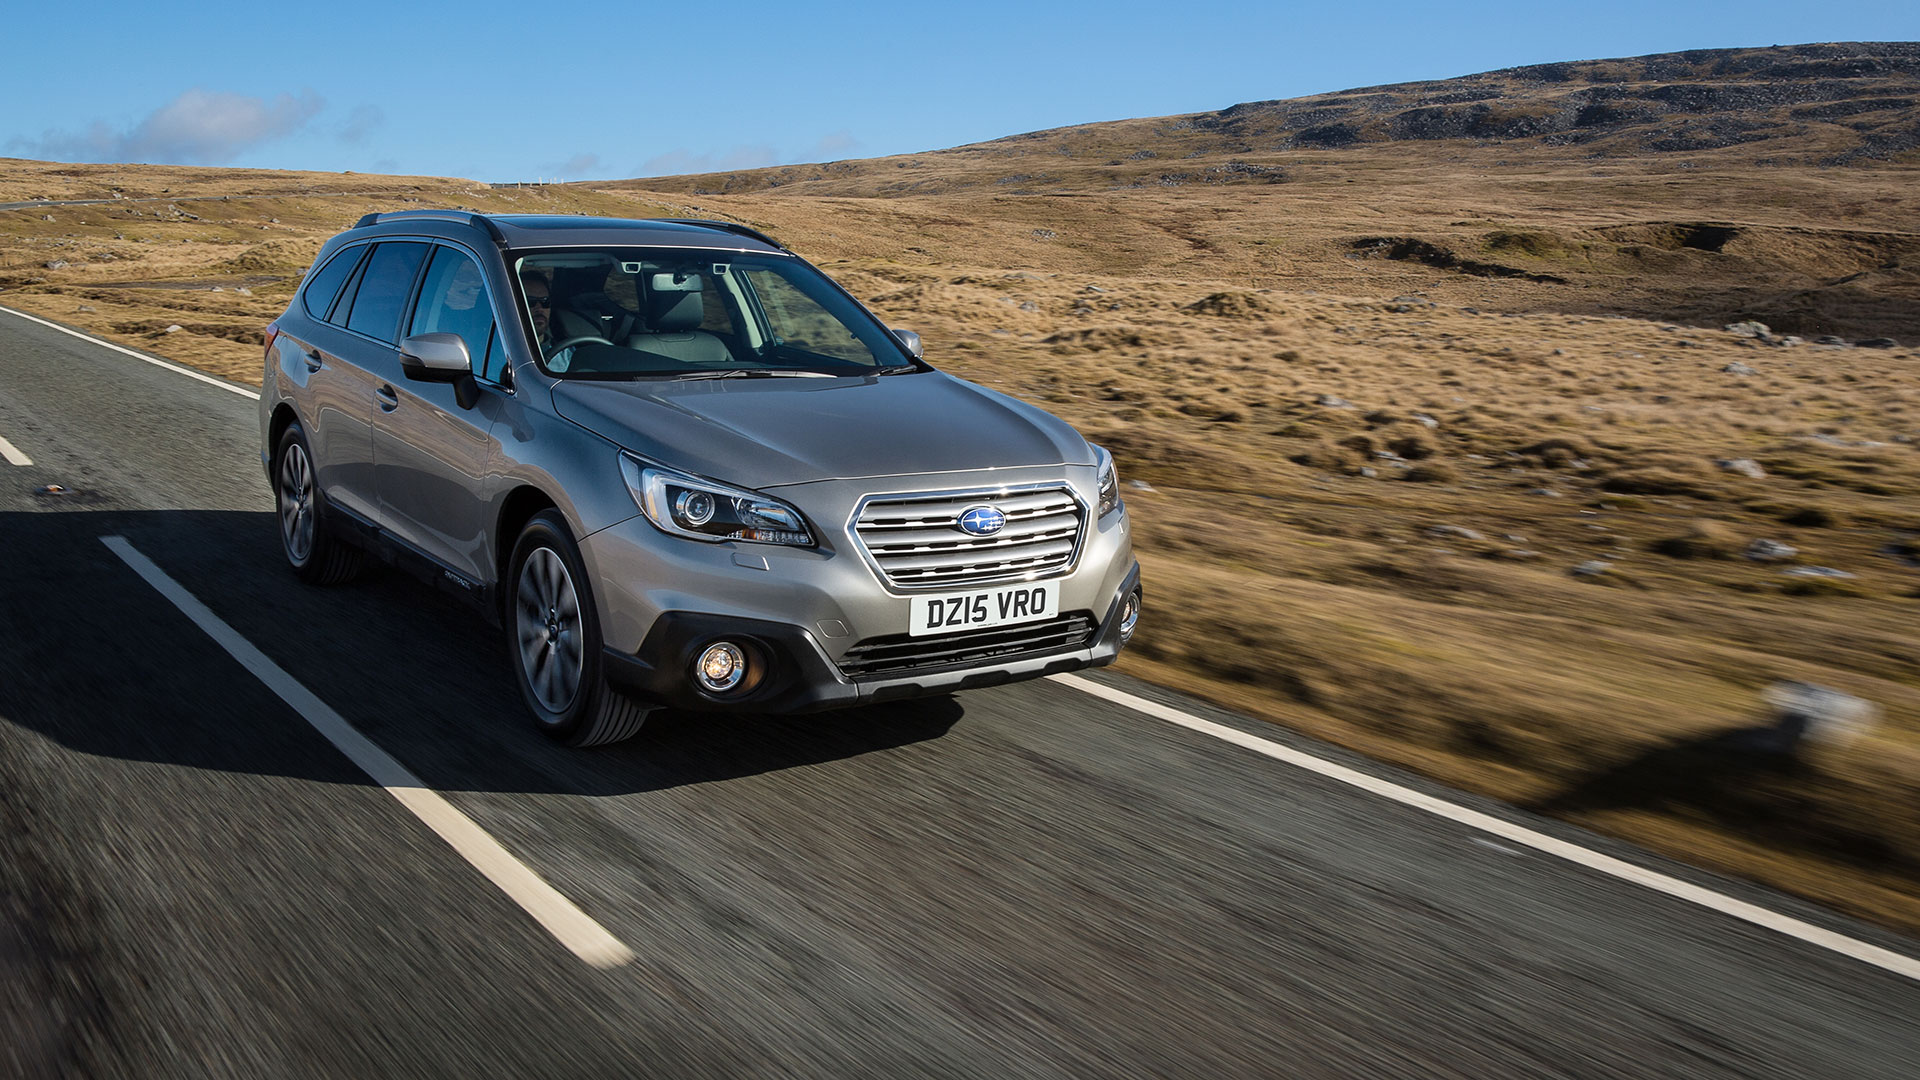 Subaru Outback Estate (2015 - ) review